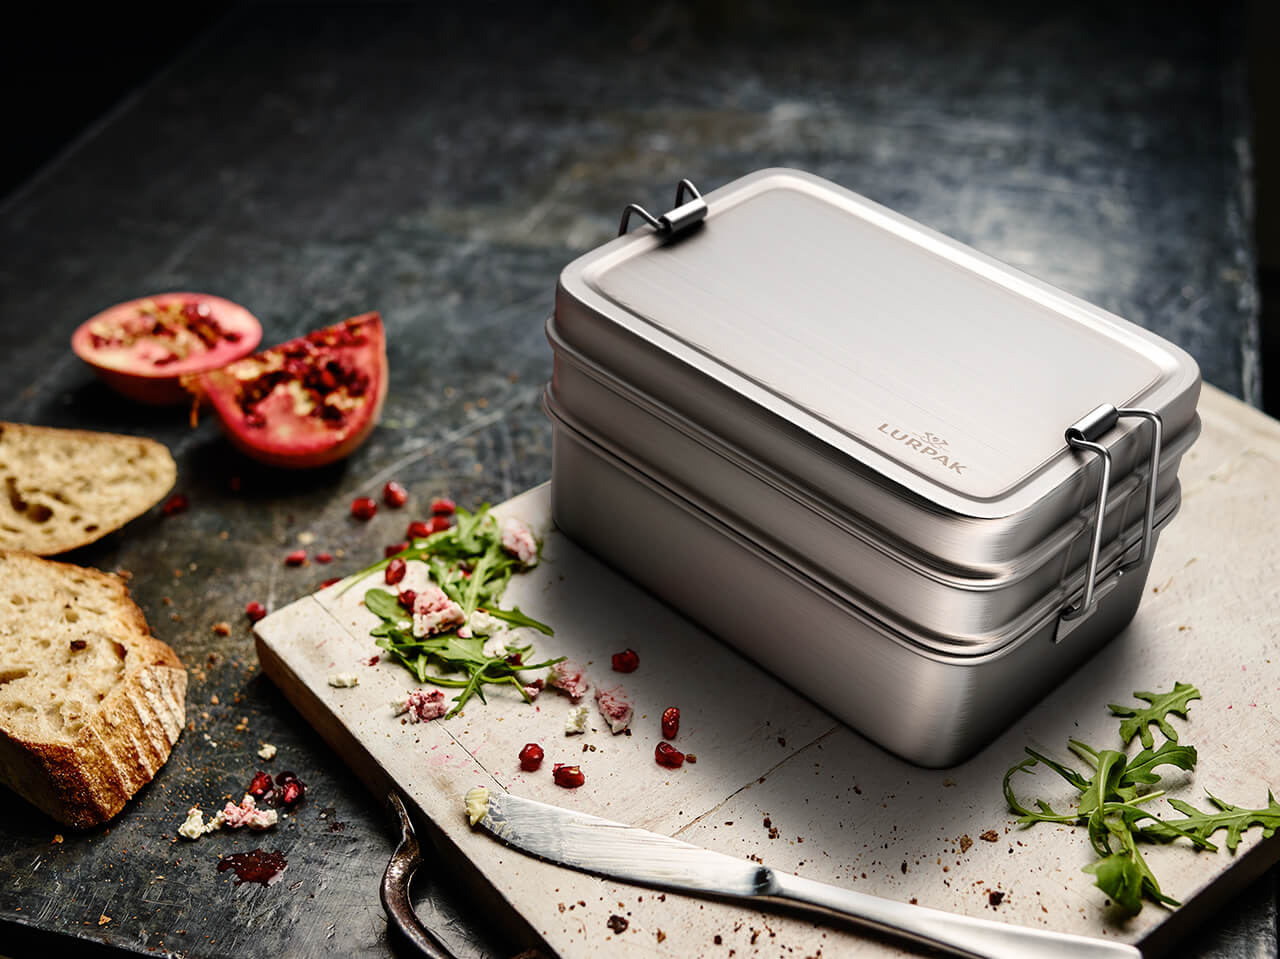 A computer generated image of a stainless steel container on a bread board with remainders of food from a finished lunch